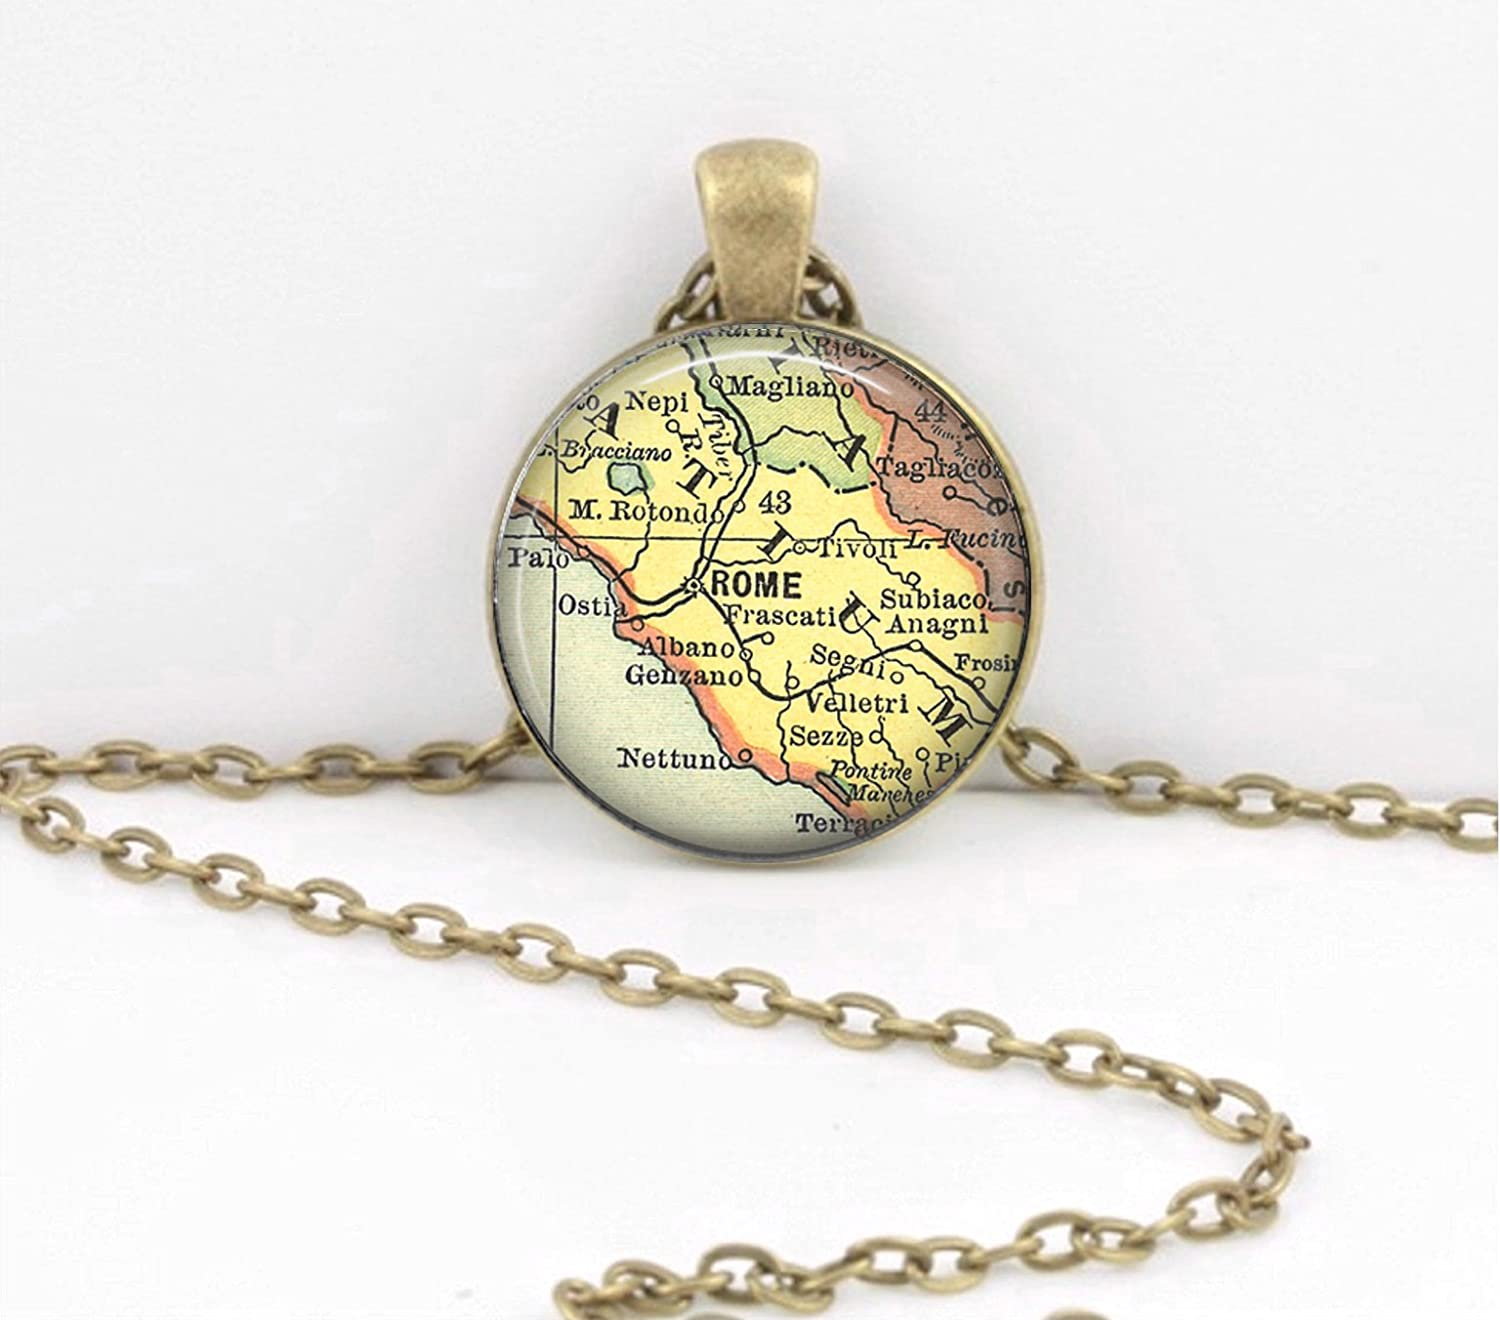 Amazon.com: Rome Italy Travel Gift Map Jewelry Vintage Map ... on map party decor, map blouse, map linens, map engraving, map gift wrapping, map of nashville necklace, map drapes, map end tables, map throw blanket, map items, map pouf, map sweatshirt, map vest, map party favors, map pendant necklaces, map name tags, map art, map wall artwork, map necklace diy, map gift tags,